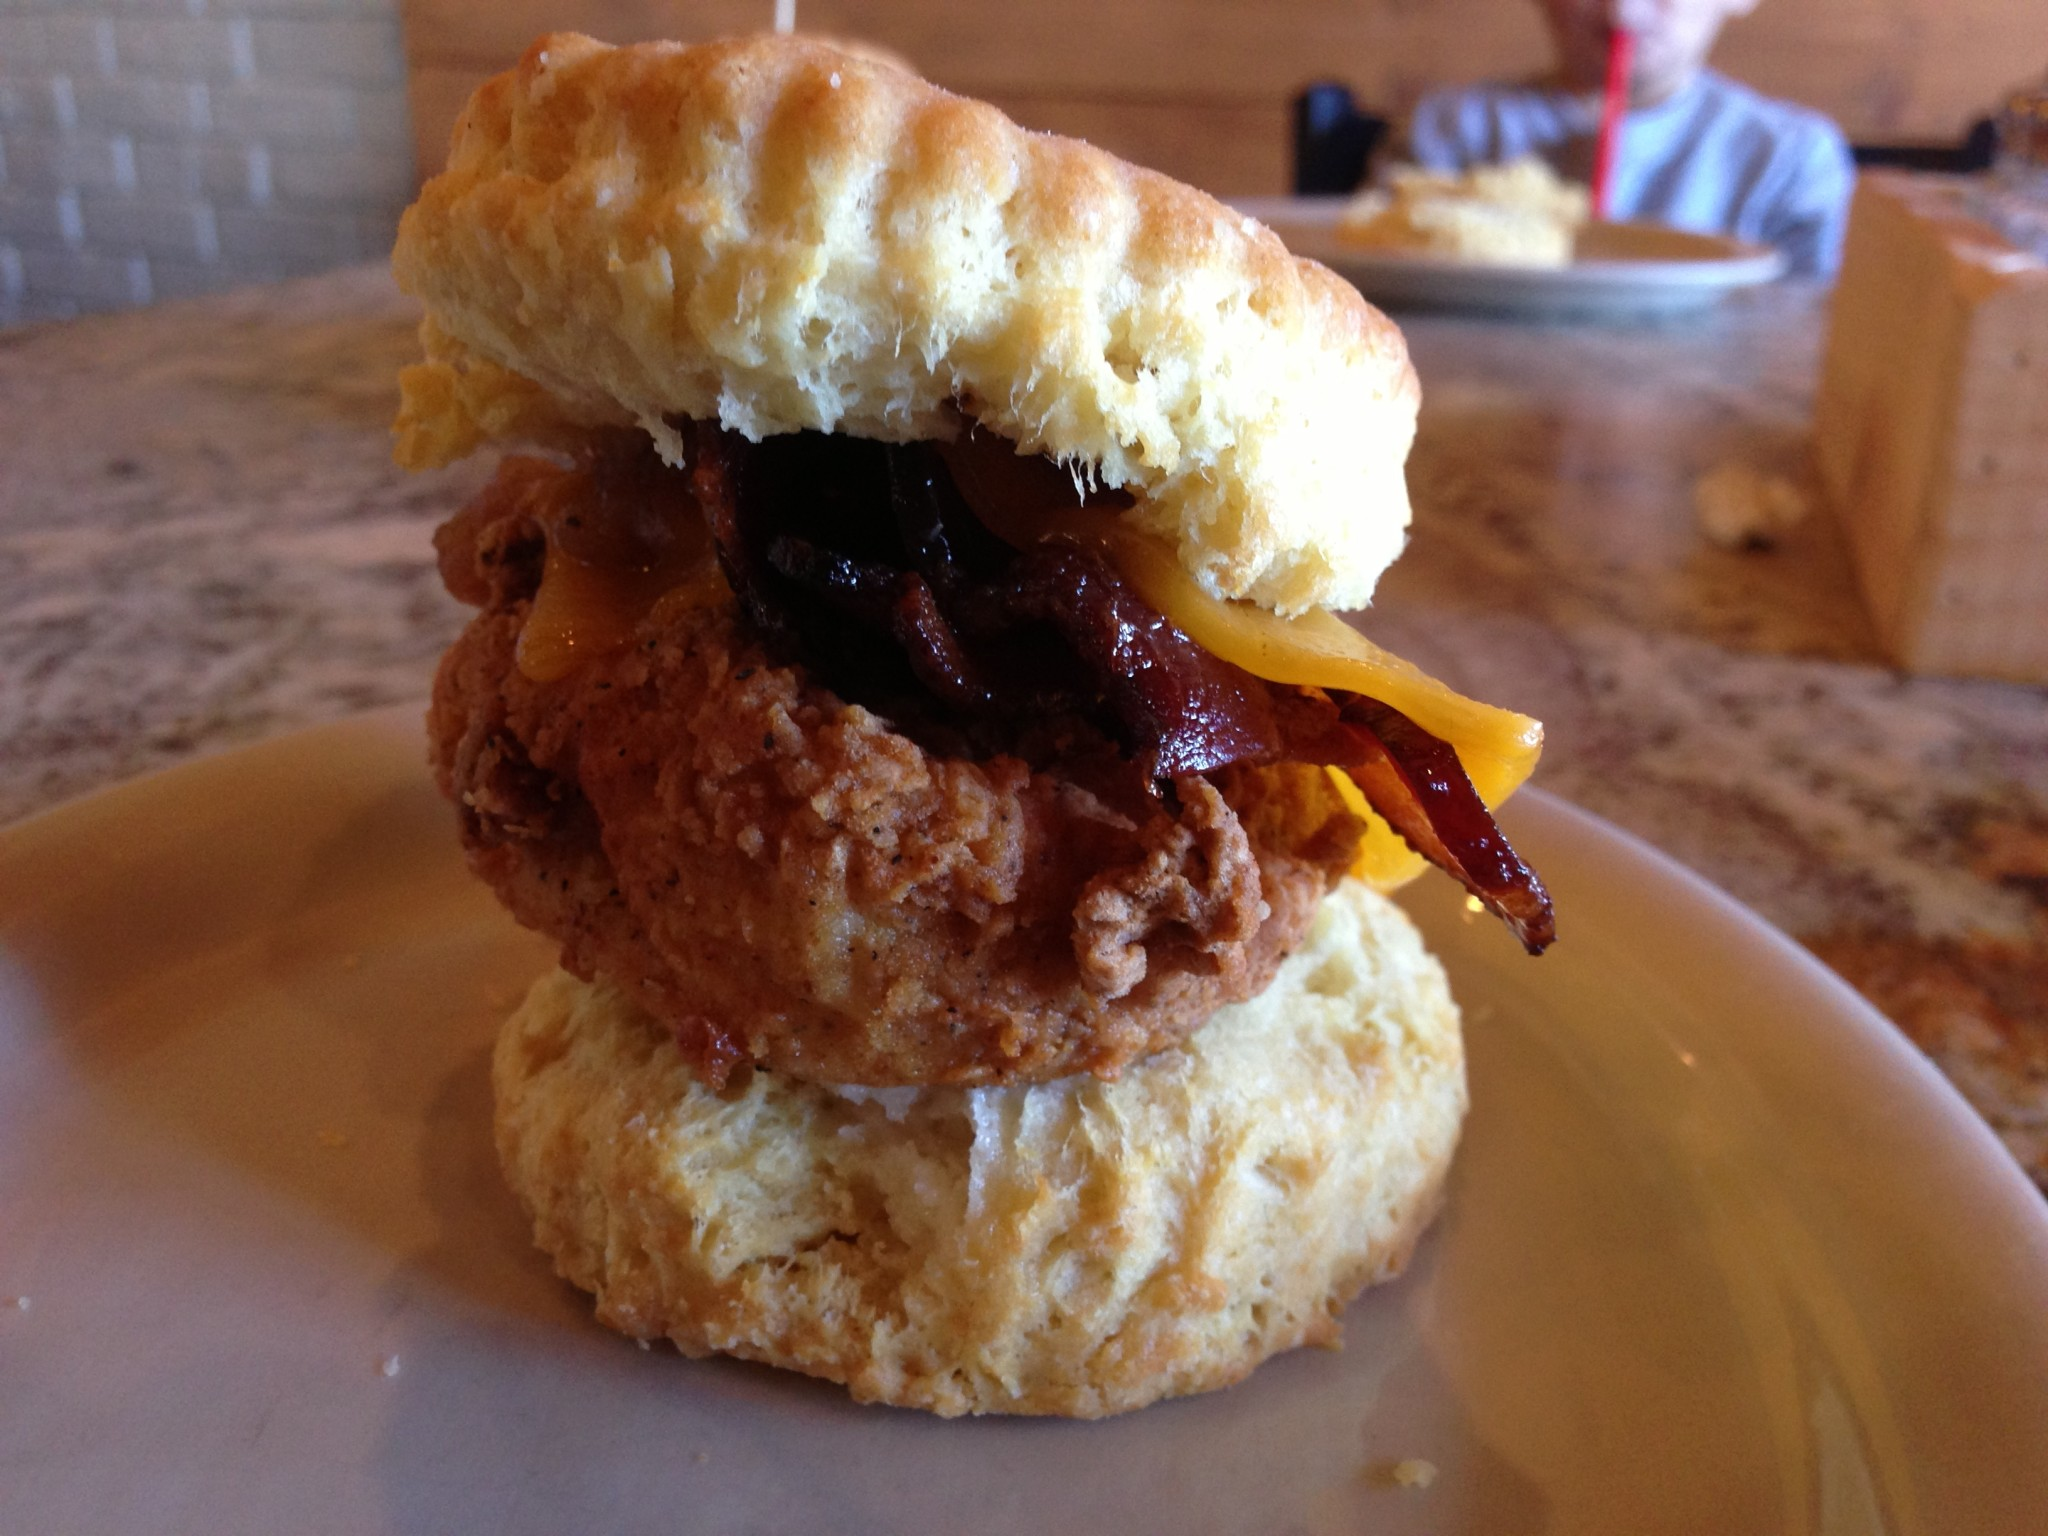 Biscuits and Babies - A Foodie Feel Good Story ...